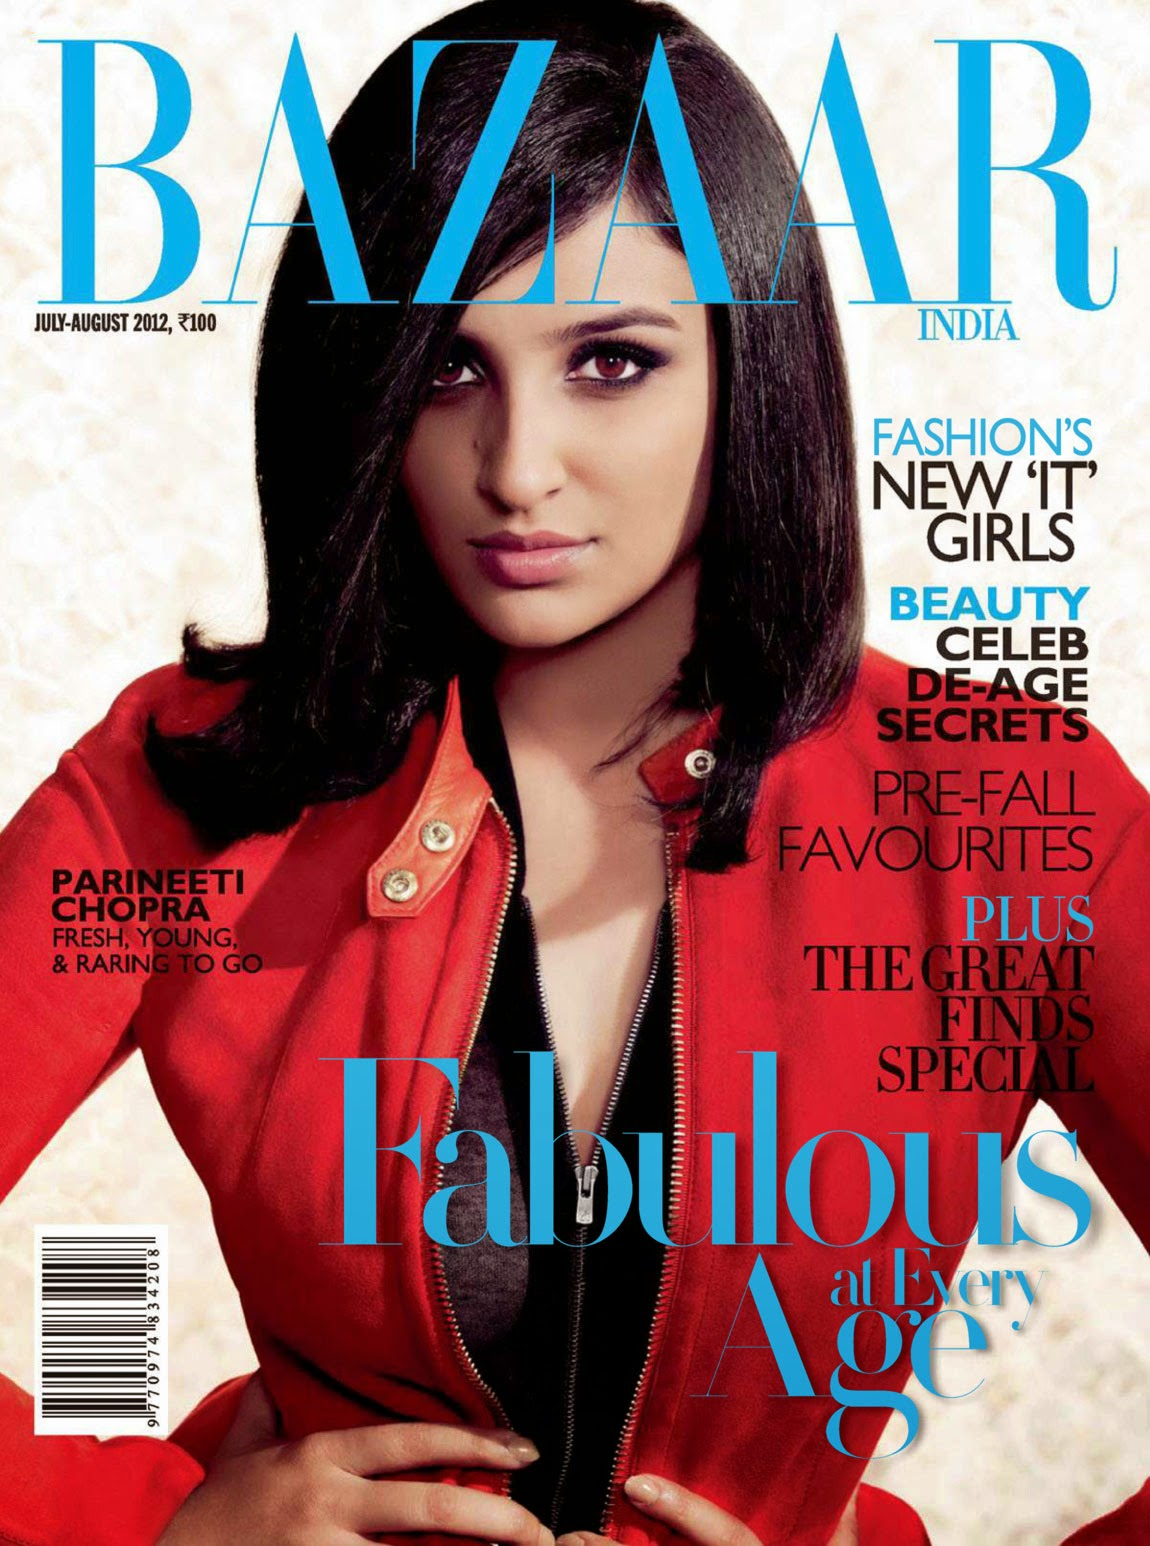 Parineeti Chopra on Harpers Bazaar Magazine Cover